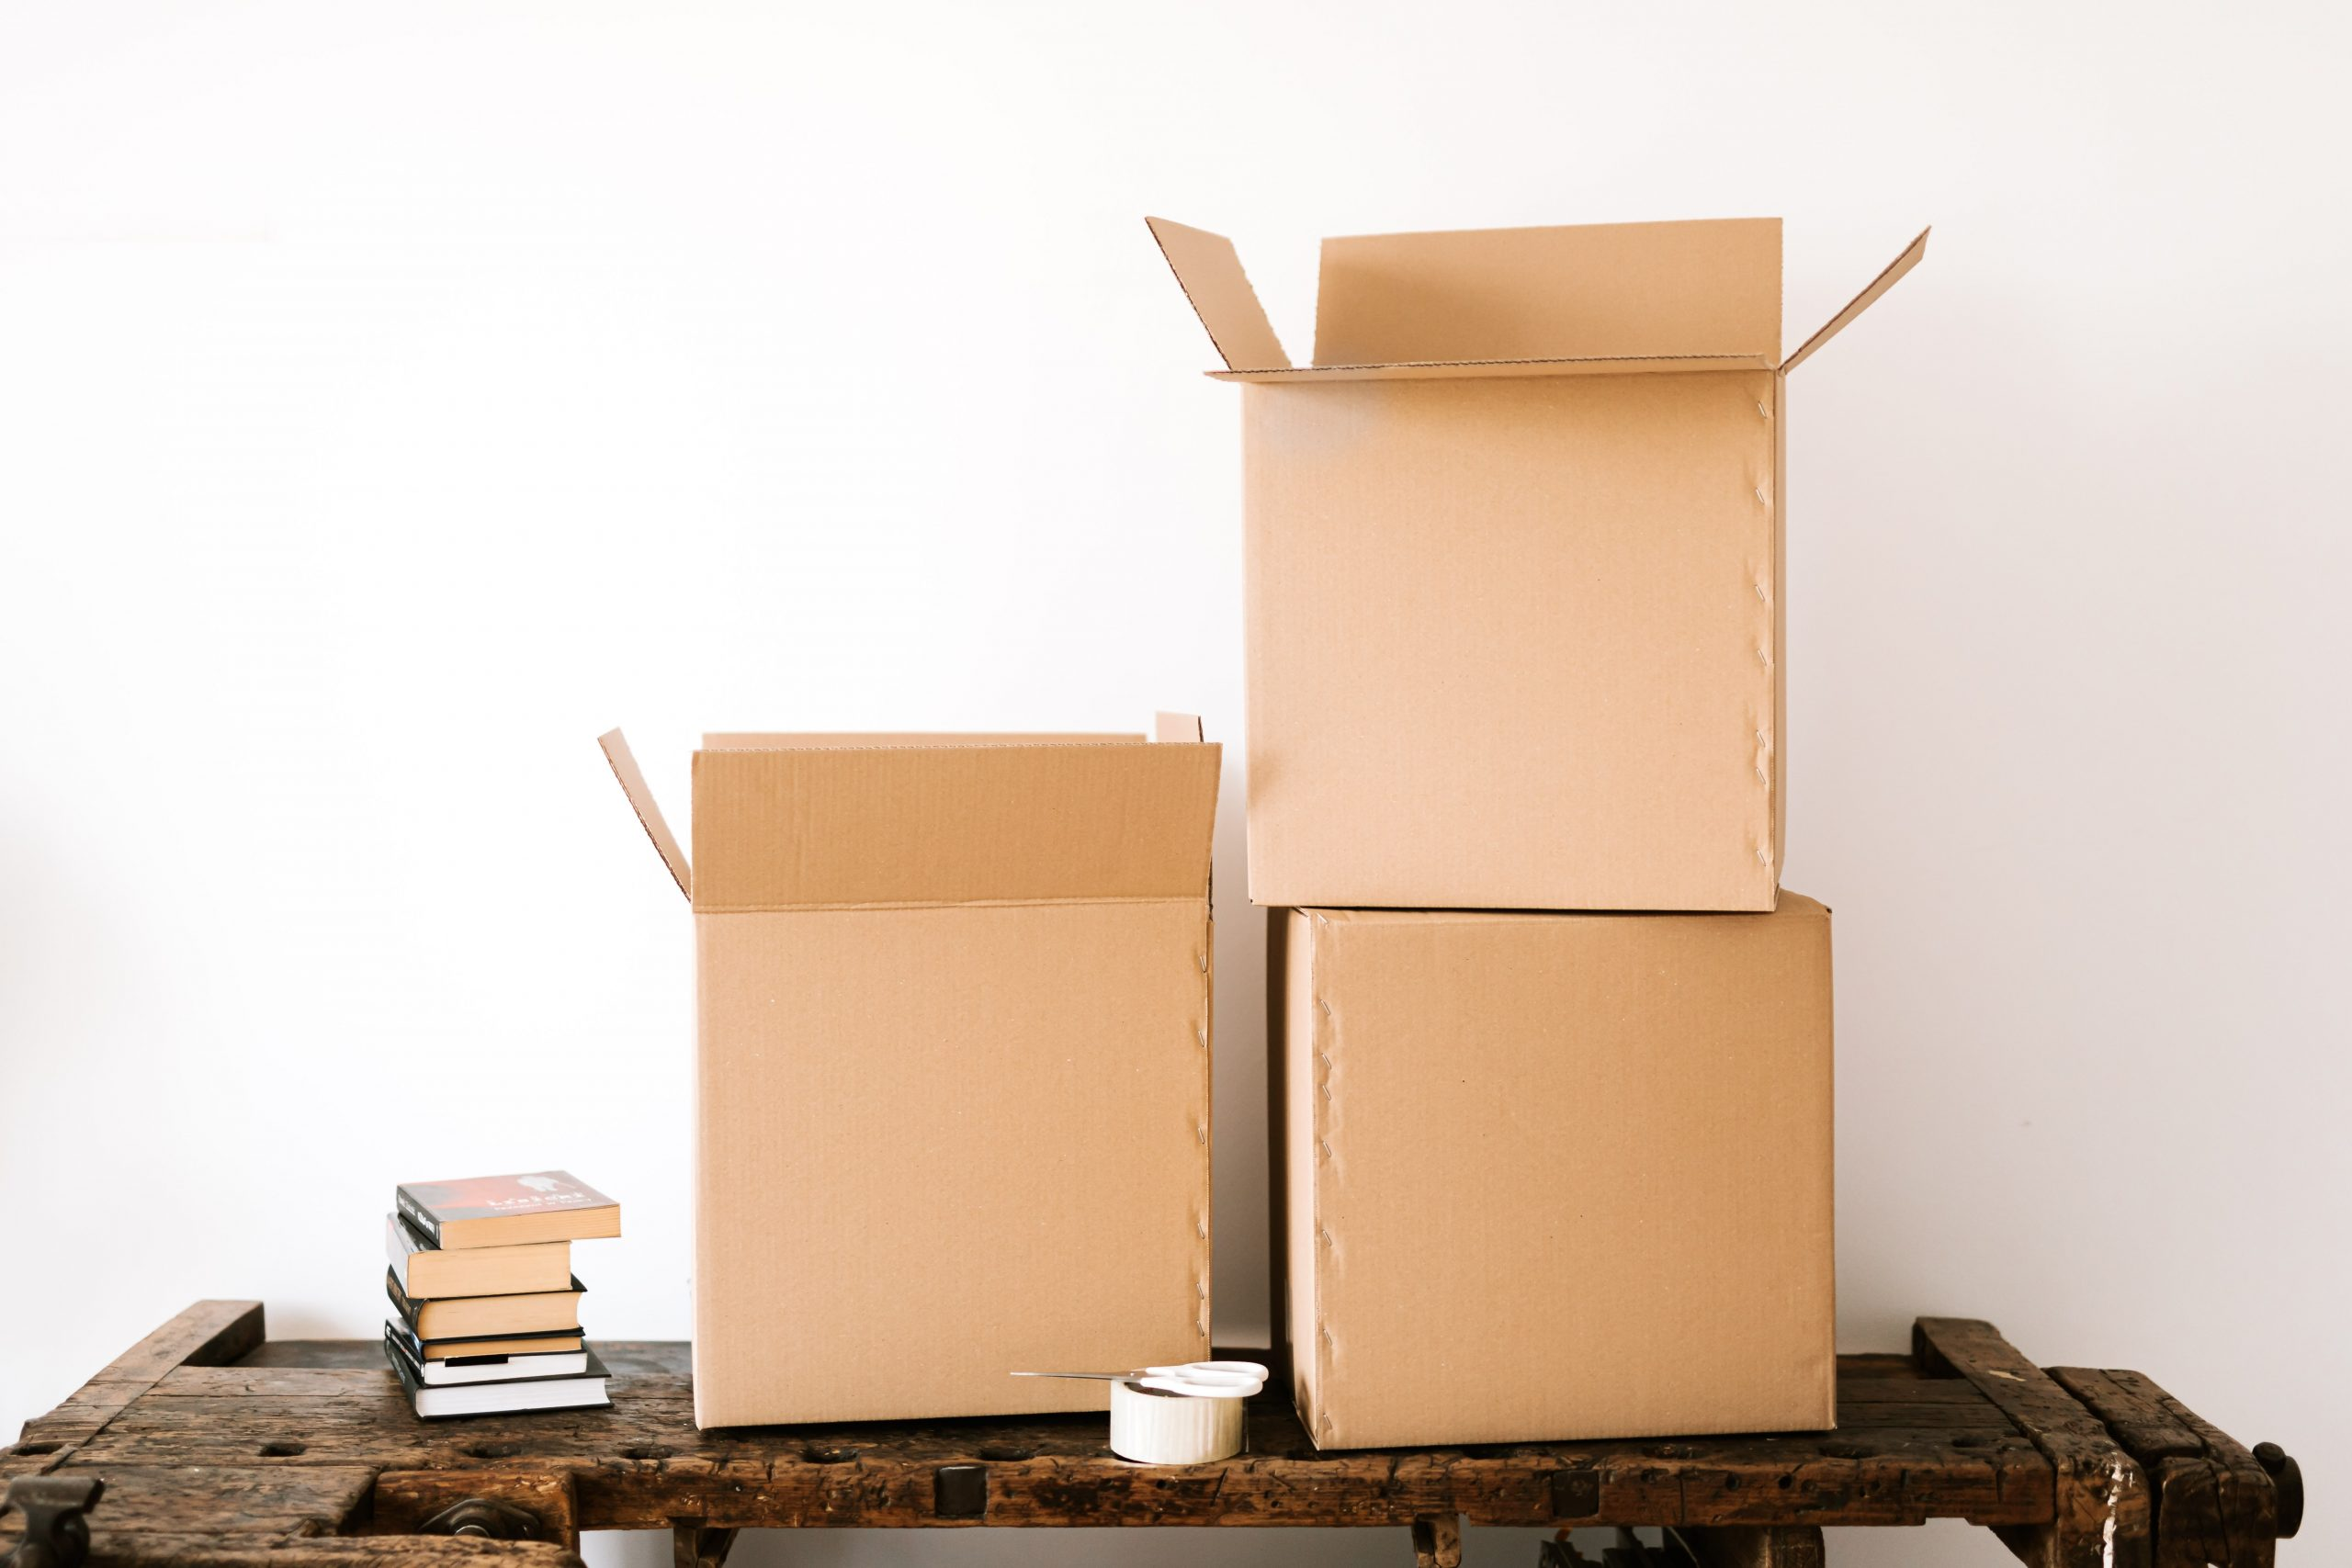 What kind of moving boxes are the most eco-friendly